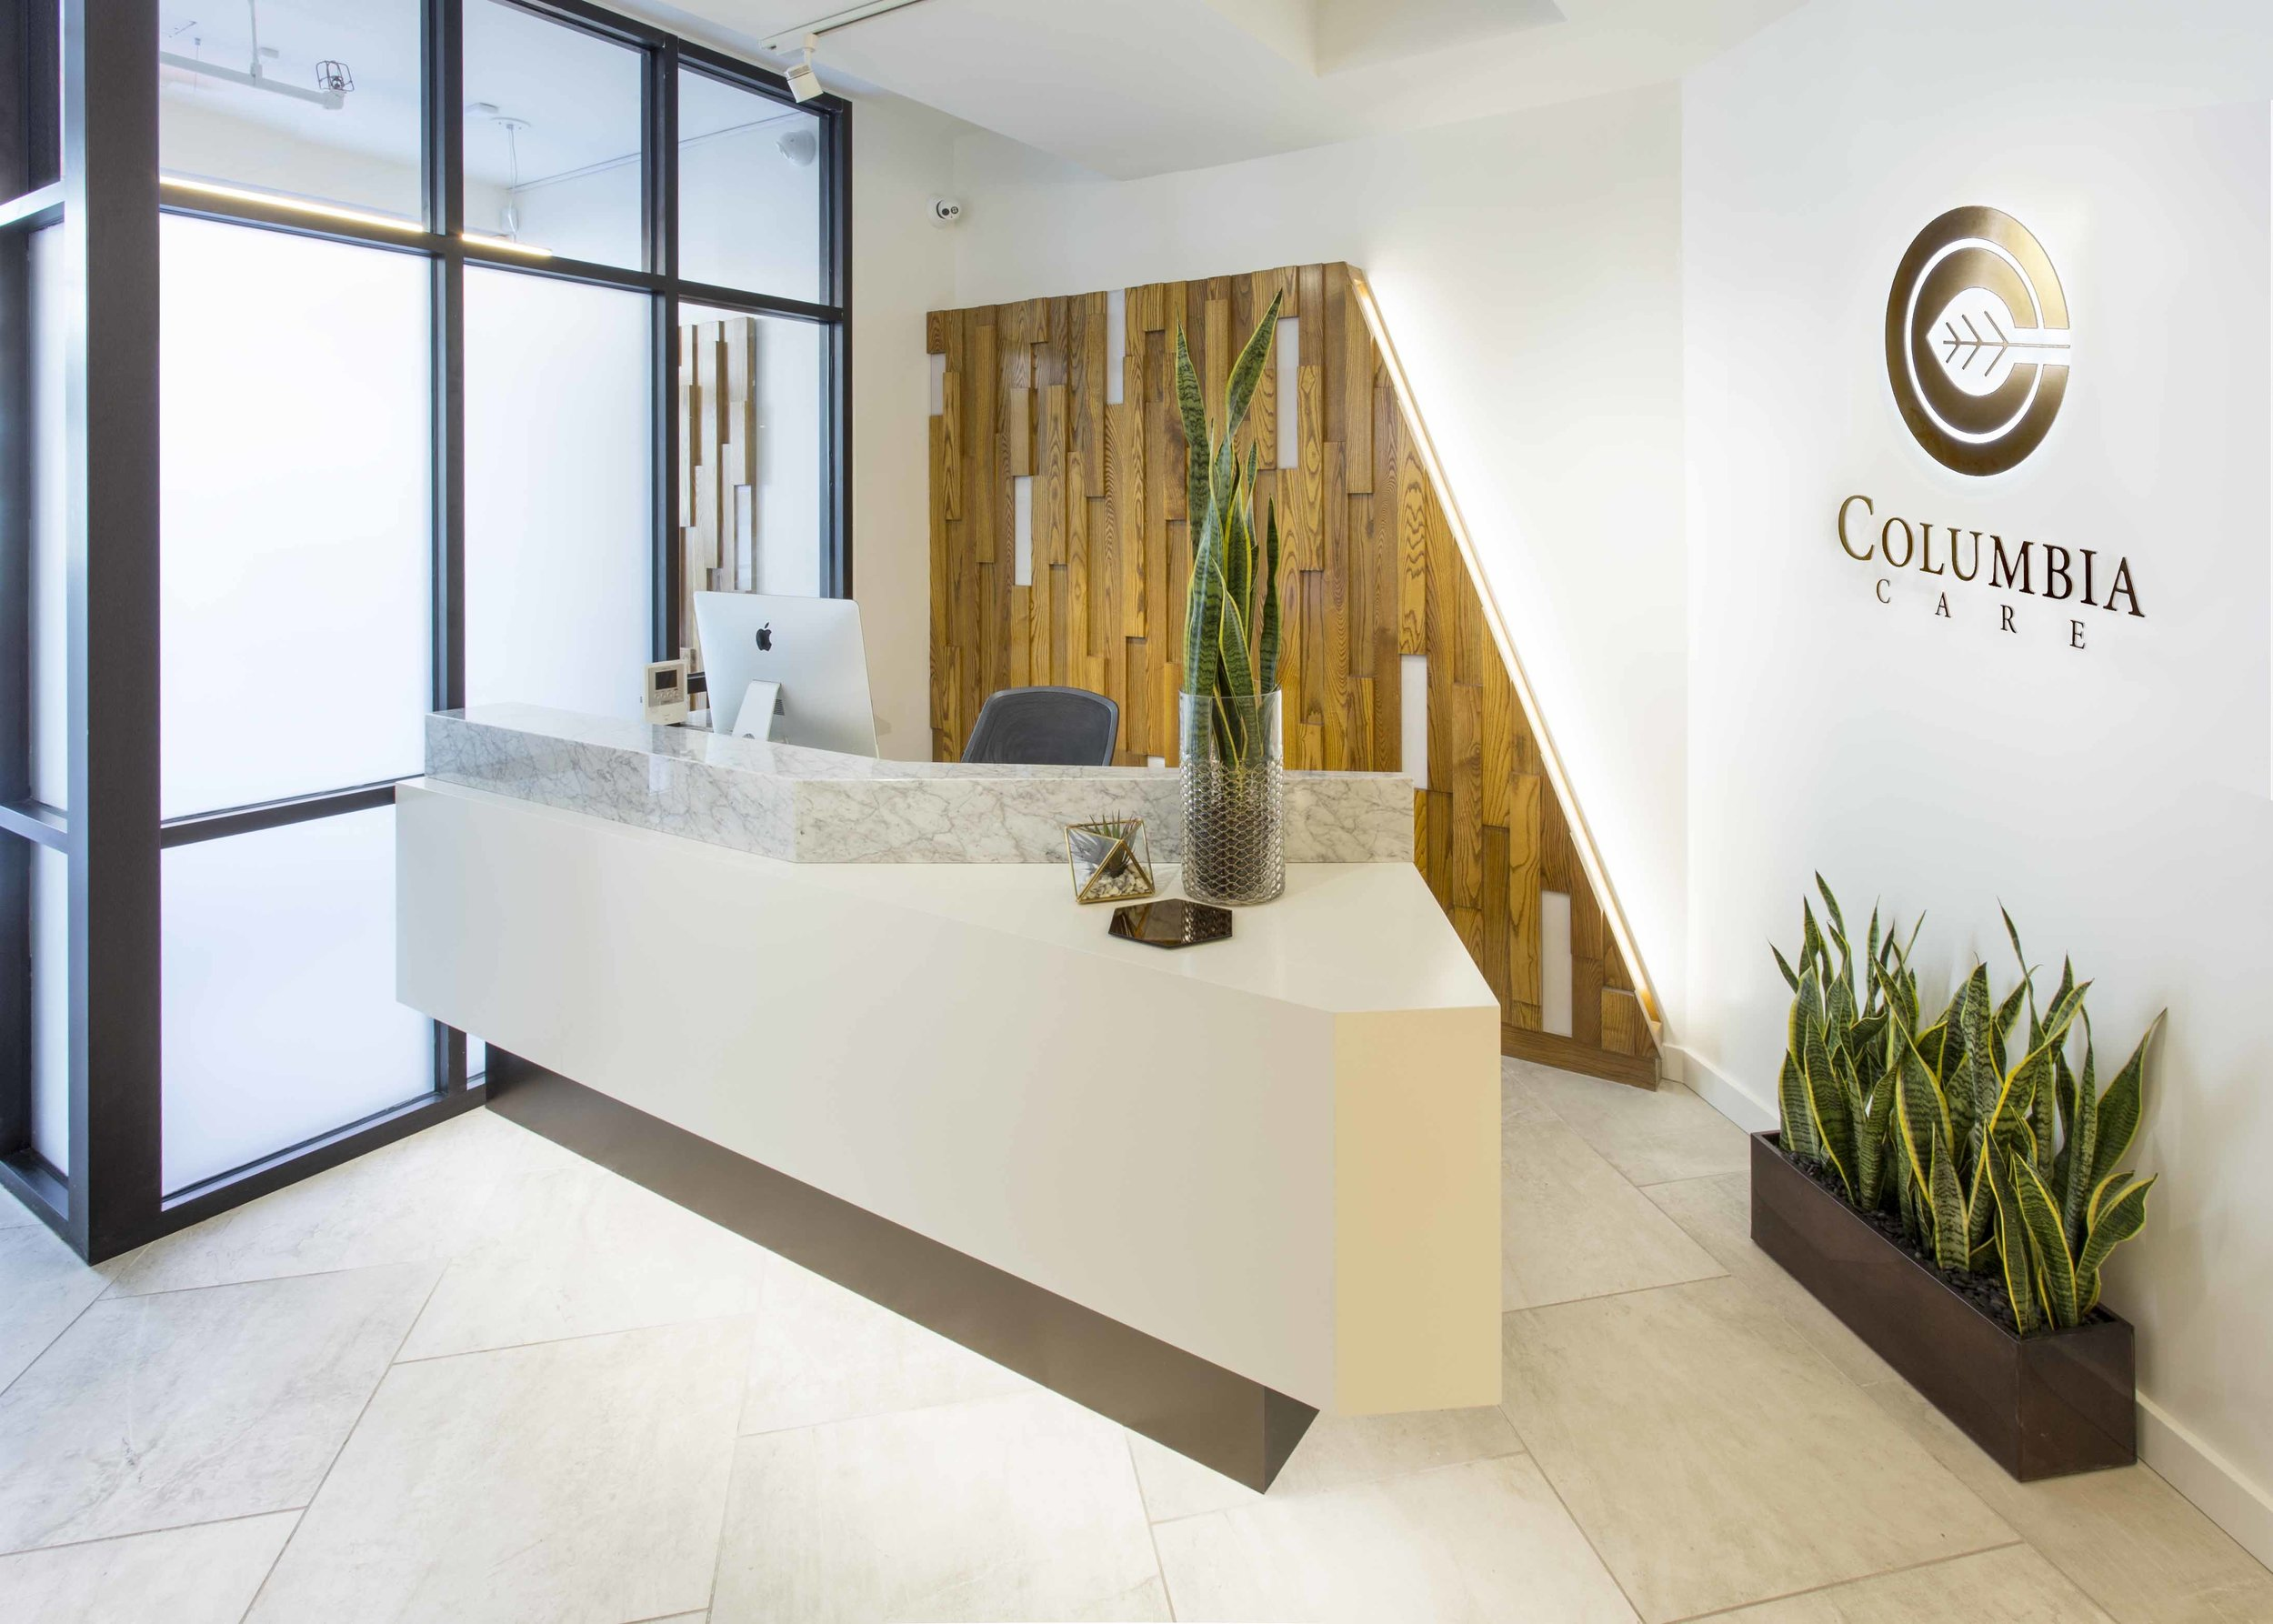 1-Columbia-Care-medical-marijuana-dispensary-reception-evangeline-dennie.jpg